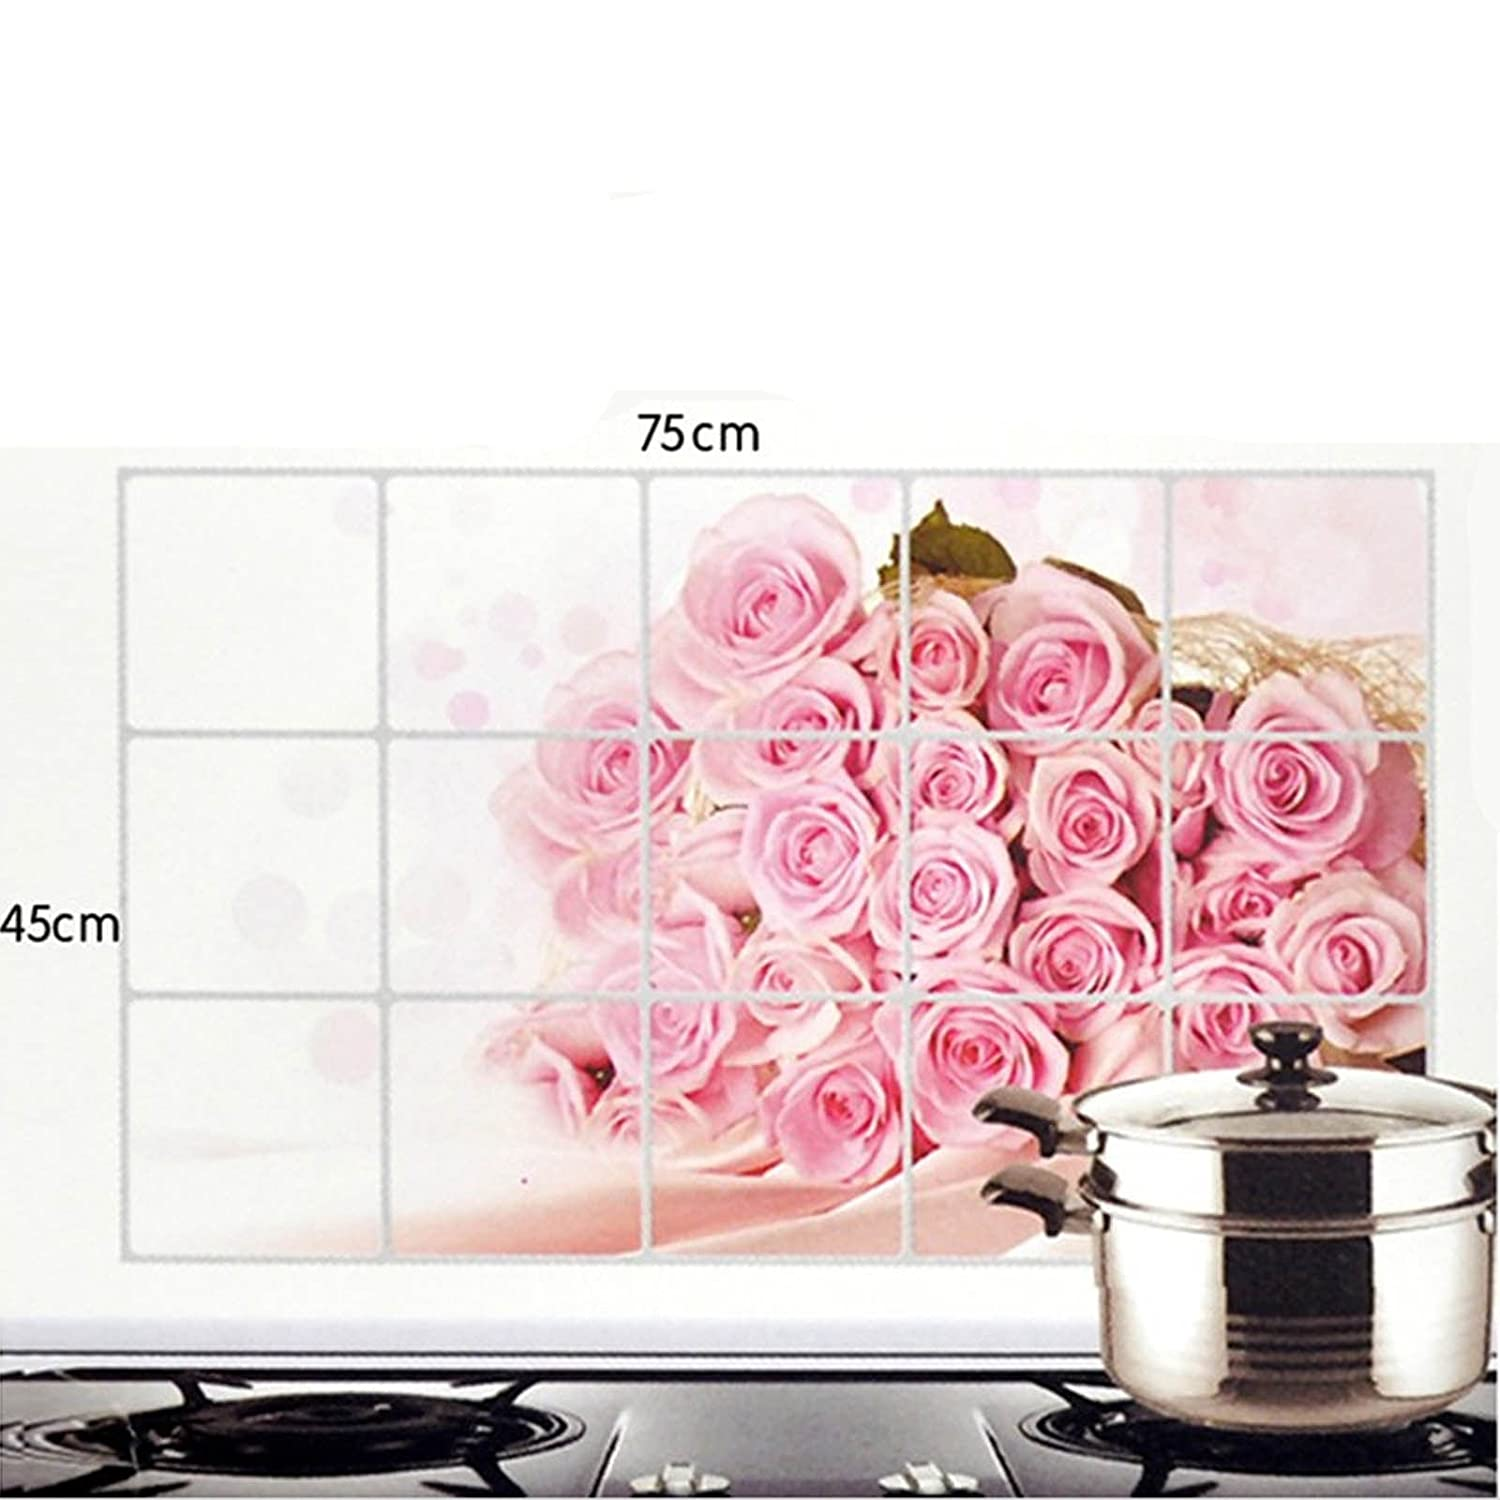 Buy Bulfyss Kitchen Wall Cover Stickers Water Proof Oil Proof and